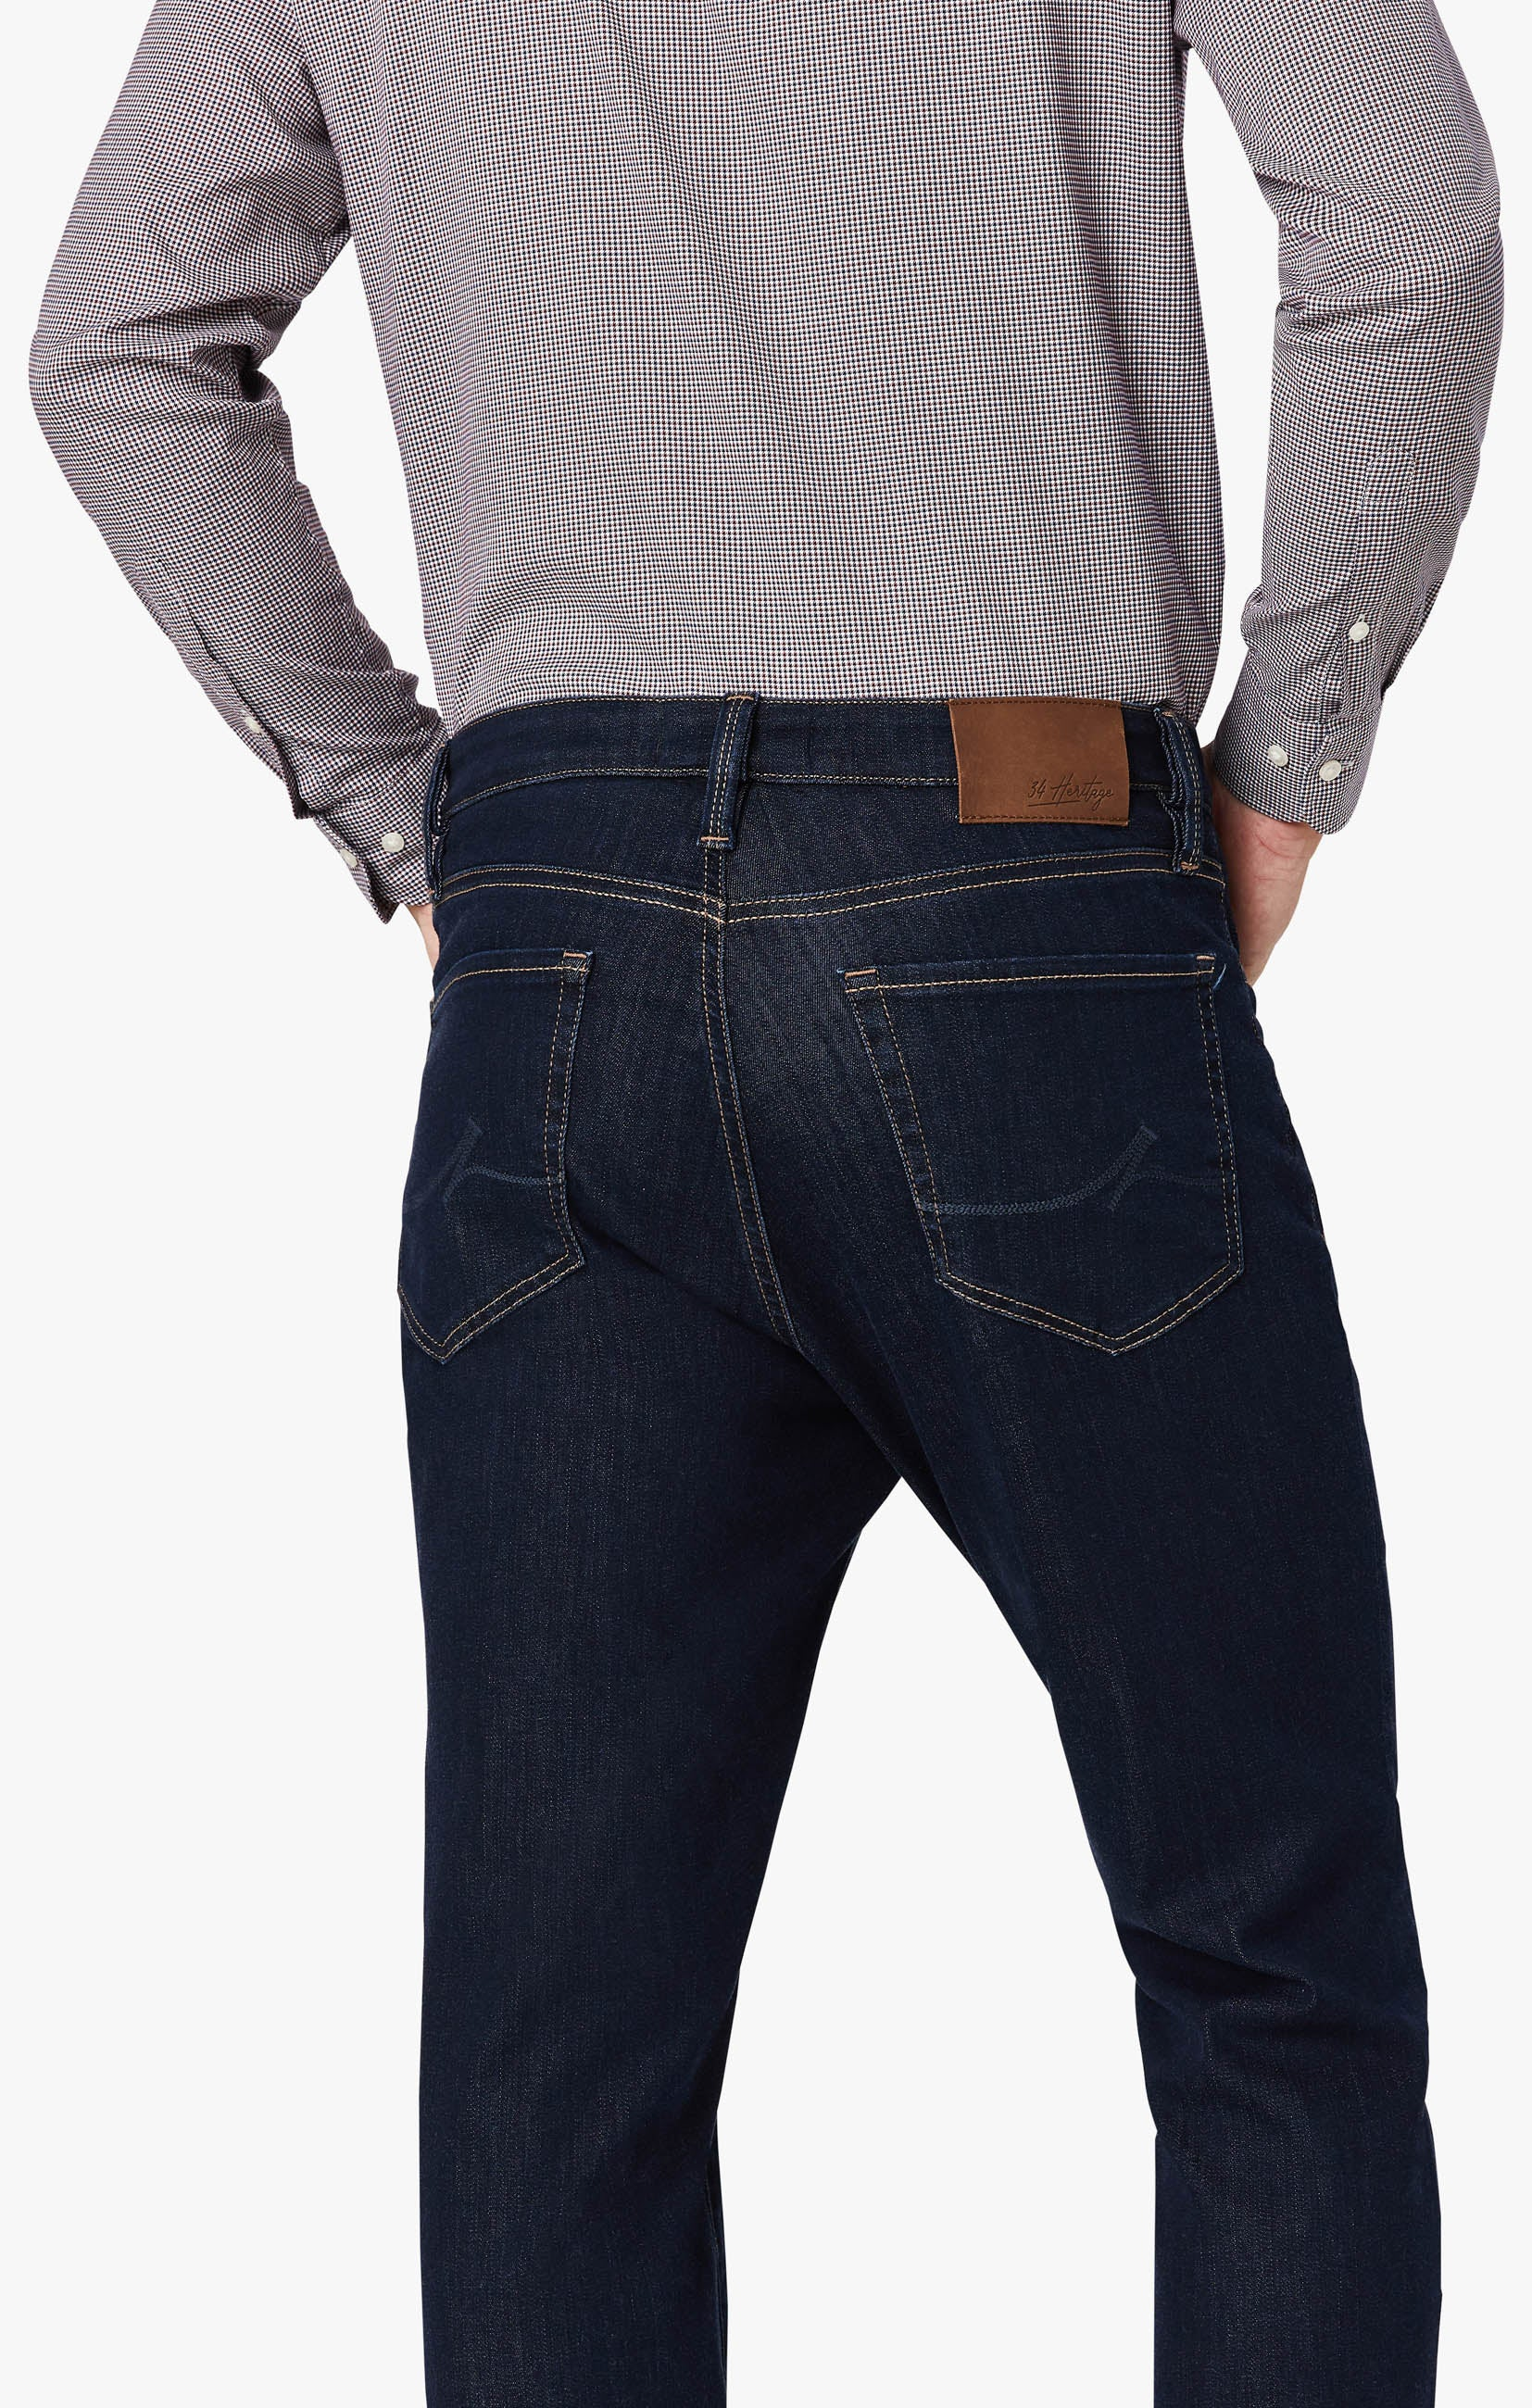 Charisma Relaxed Straight Leg Jeans In Dark Siena Image 7